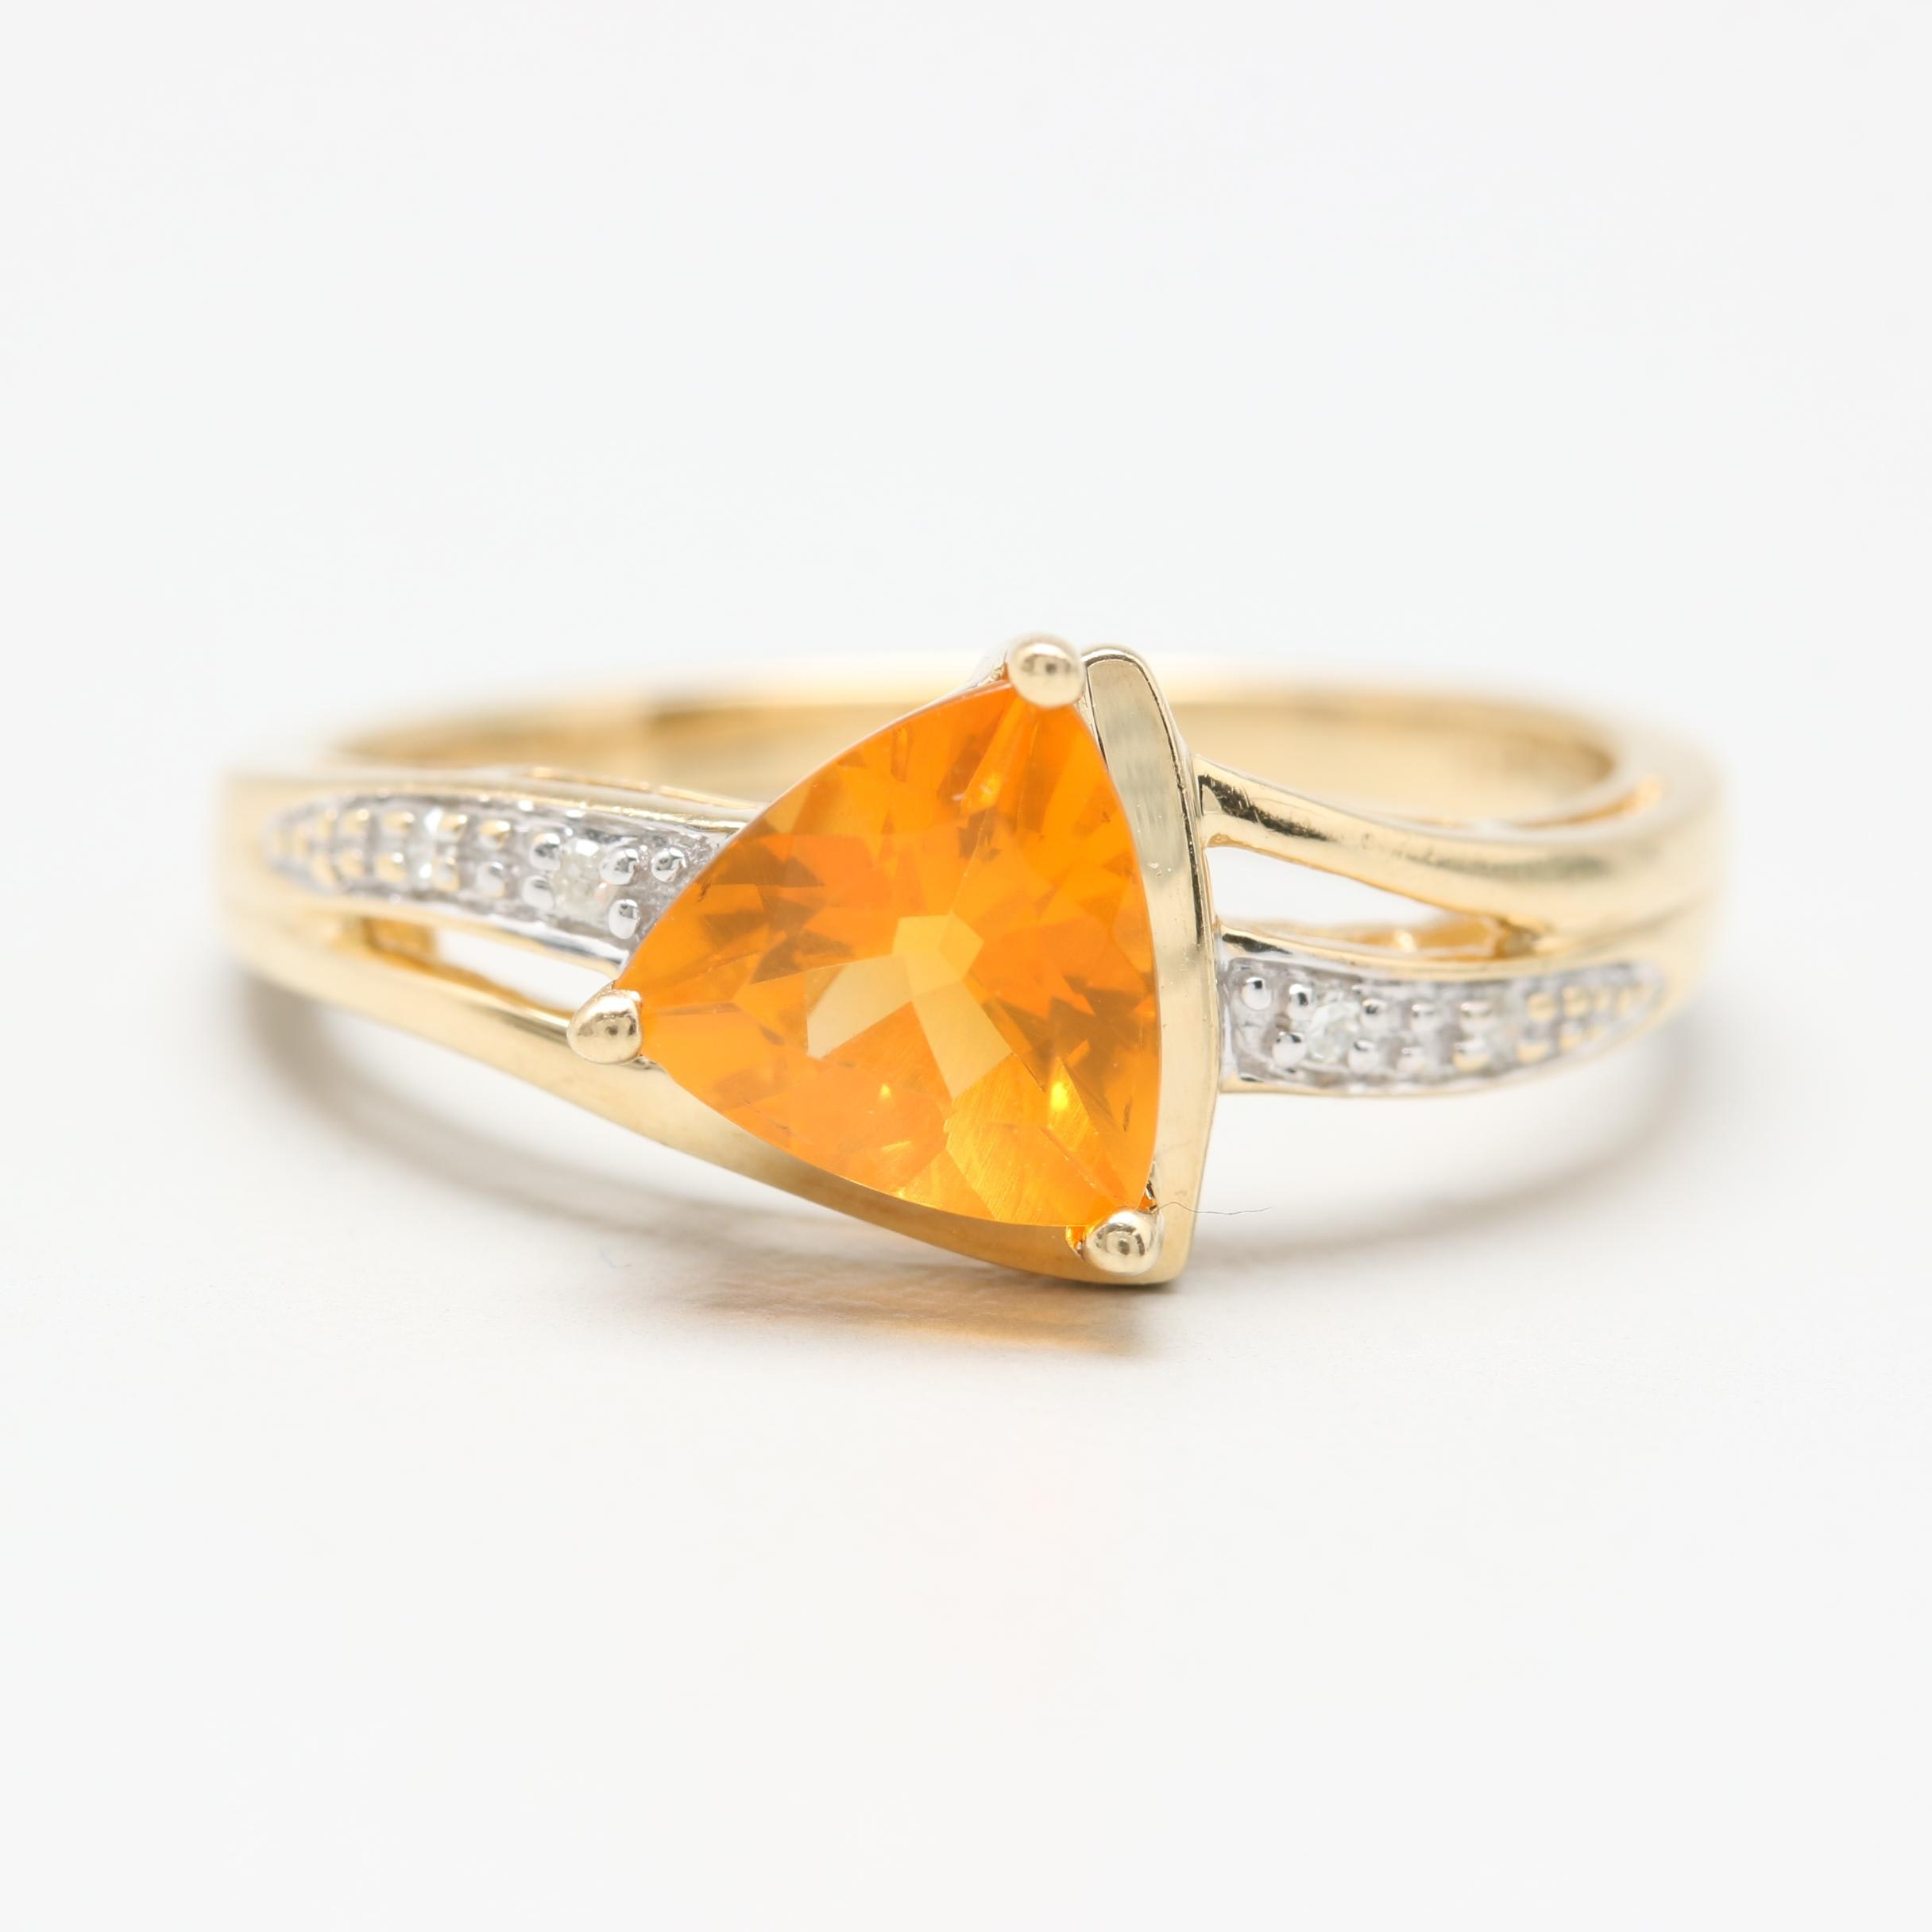 14K Yellow Gold Fire Opal and Diamond Ring with White Gold Accents